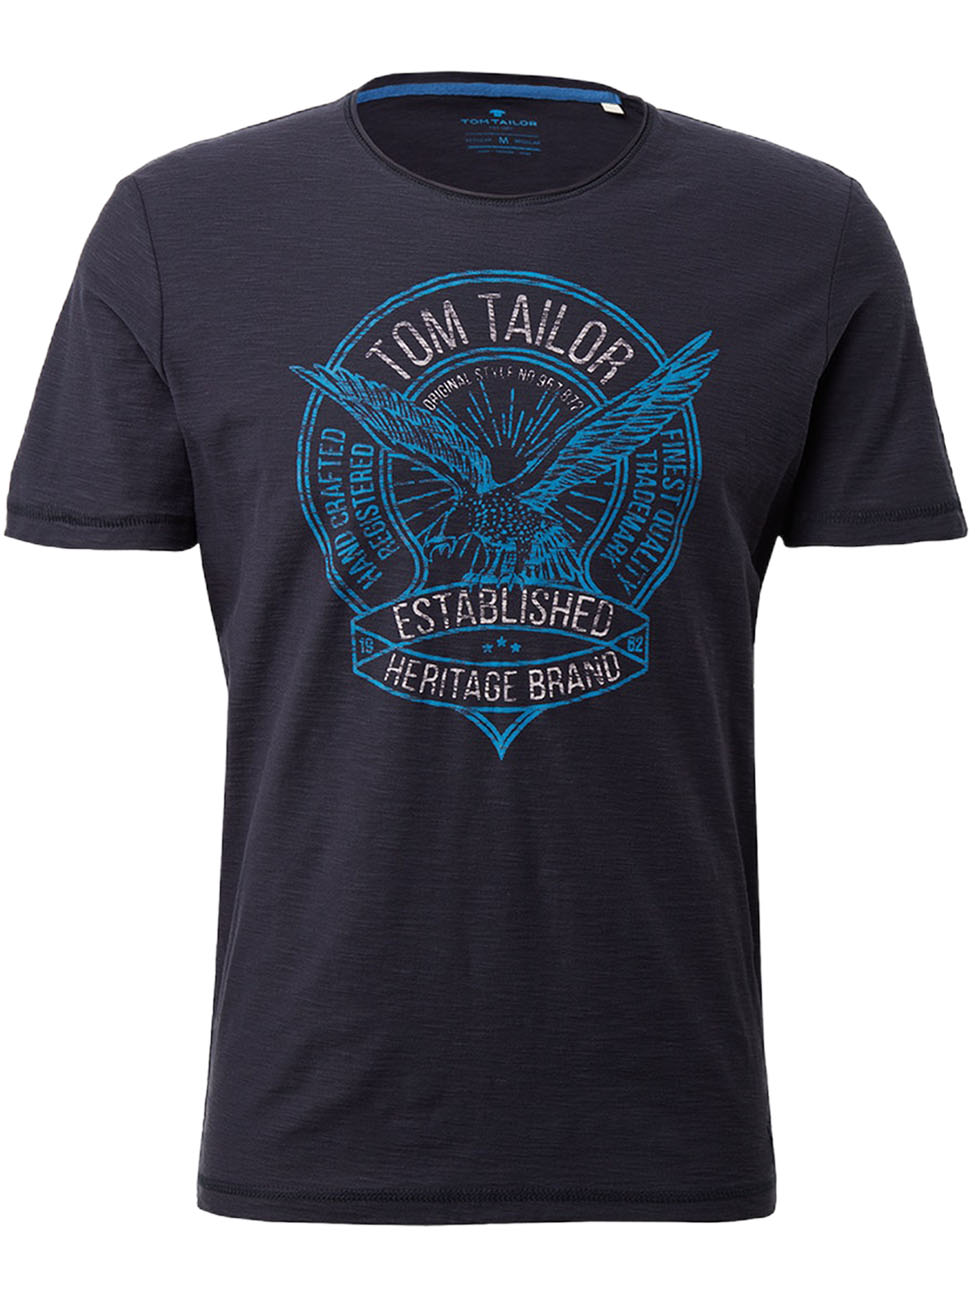 c032373411593 Tom Tailor Herren T-Shirt mit Print kaufen - JEANS-DIRECT.DE